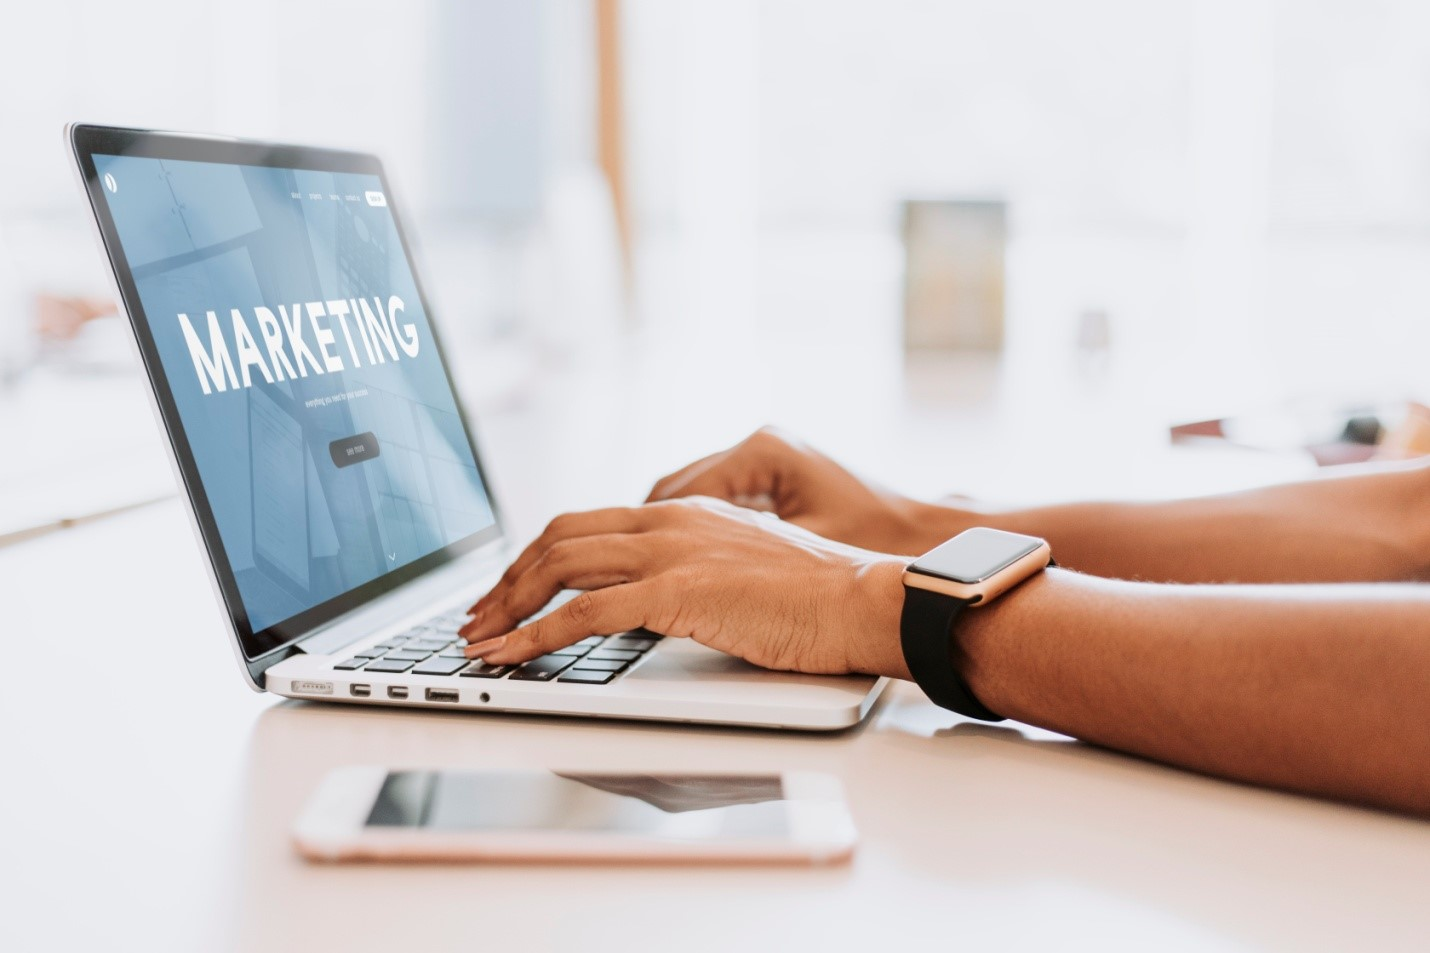 Jobs in Marketing - Embracing and Overcoming the Obstacles